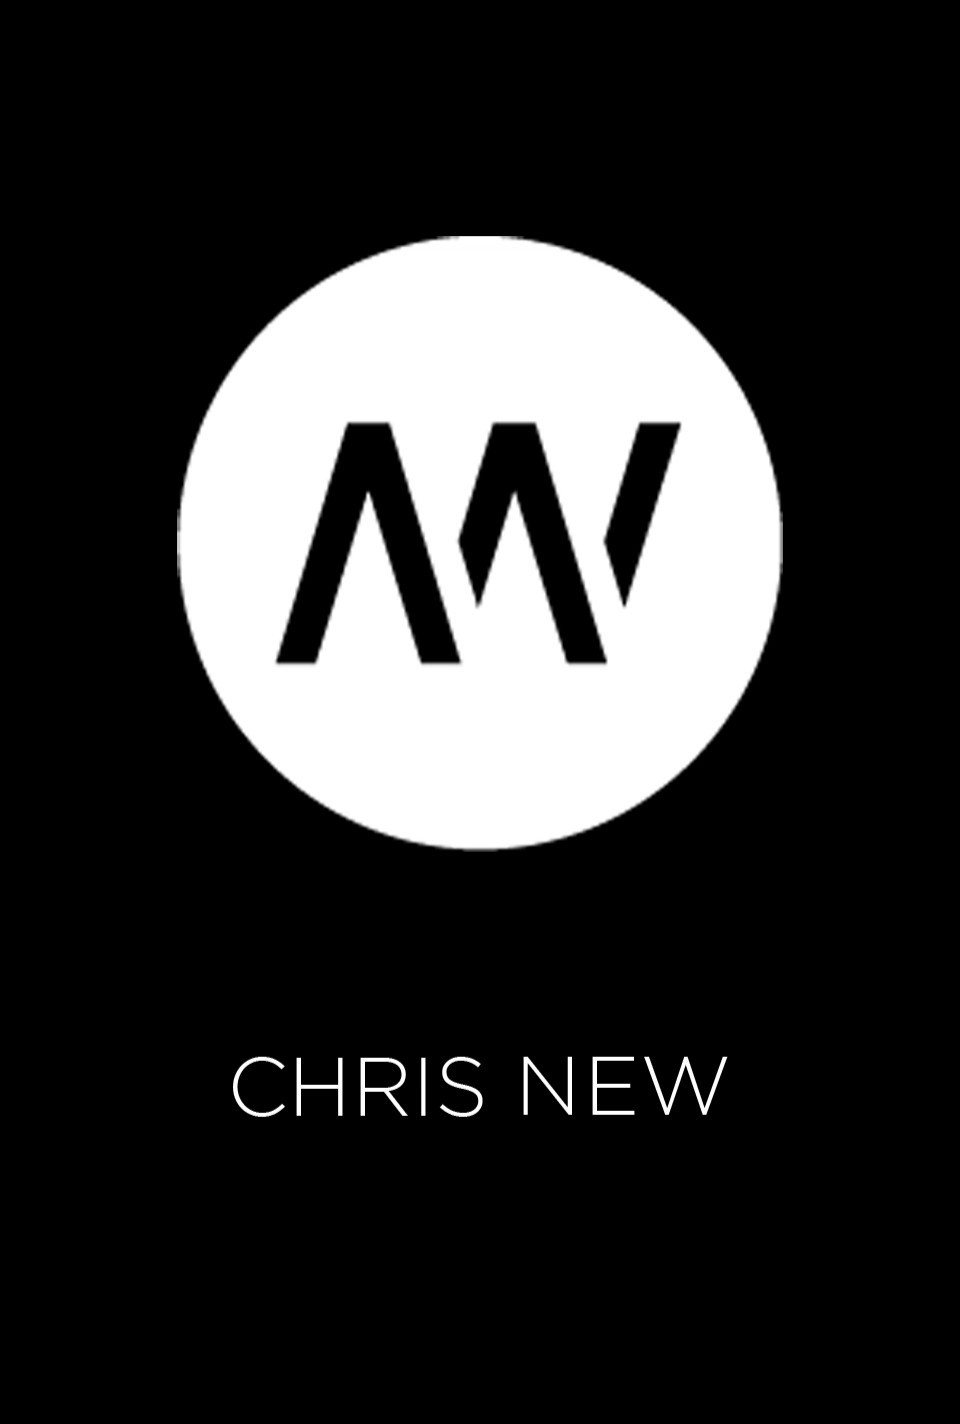 Chris New